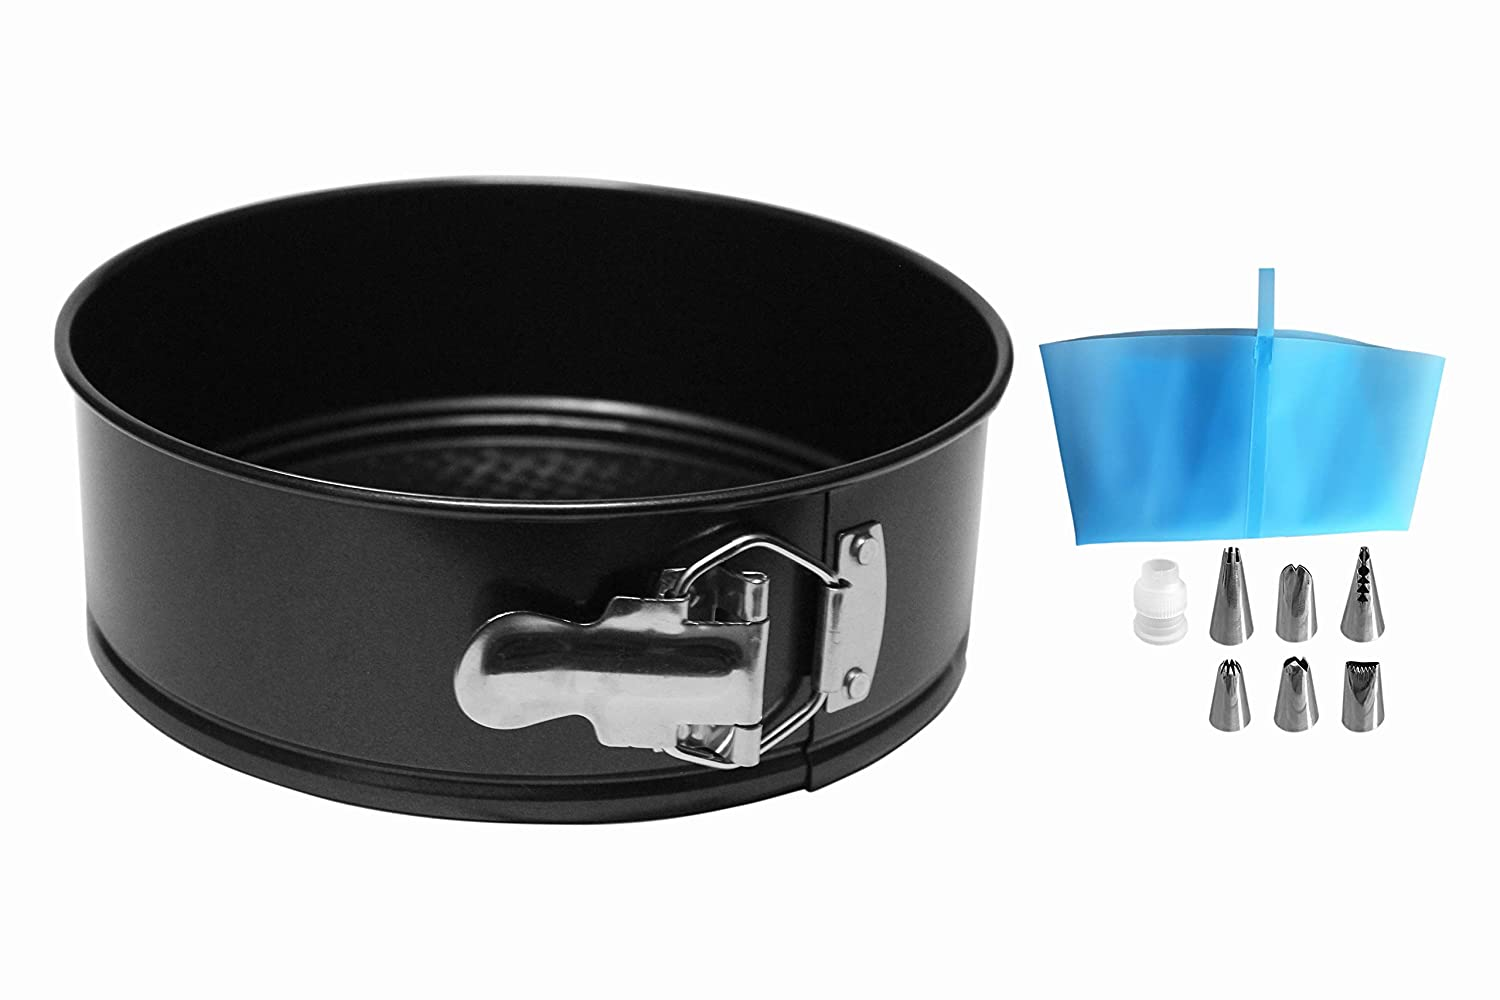 MiHerom 7 Inch Non Stick Springform Pan,Leakproof Cheesecake Pan,Higher Side Cake Pan Bakeware with Icing Piping Set,Fit 6,8 Qt Pressure Cooker,Instant Pot,Air Fryer,7 Inch,7 Cup